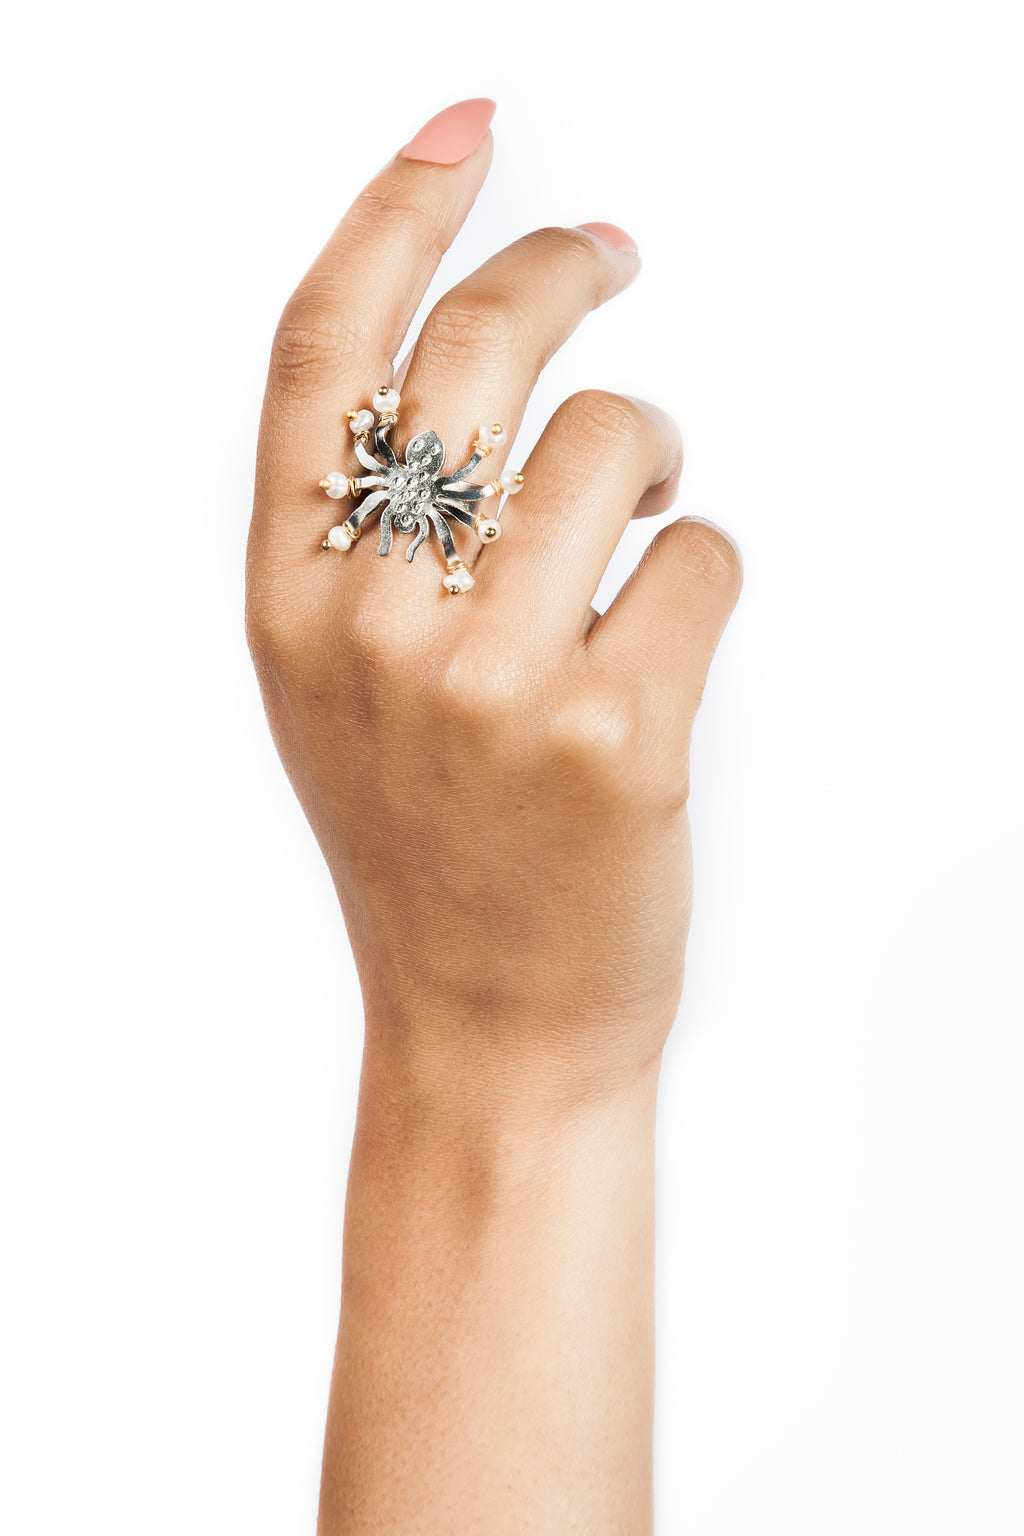 Colombian Jewelry Spider Ring Insect Jewelry